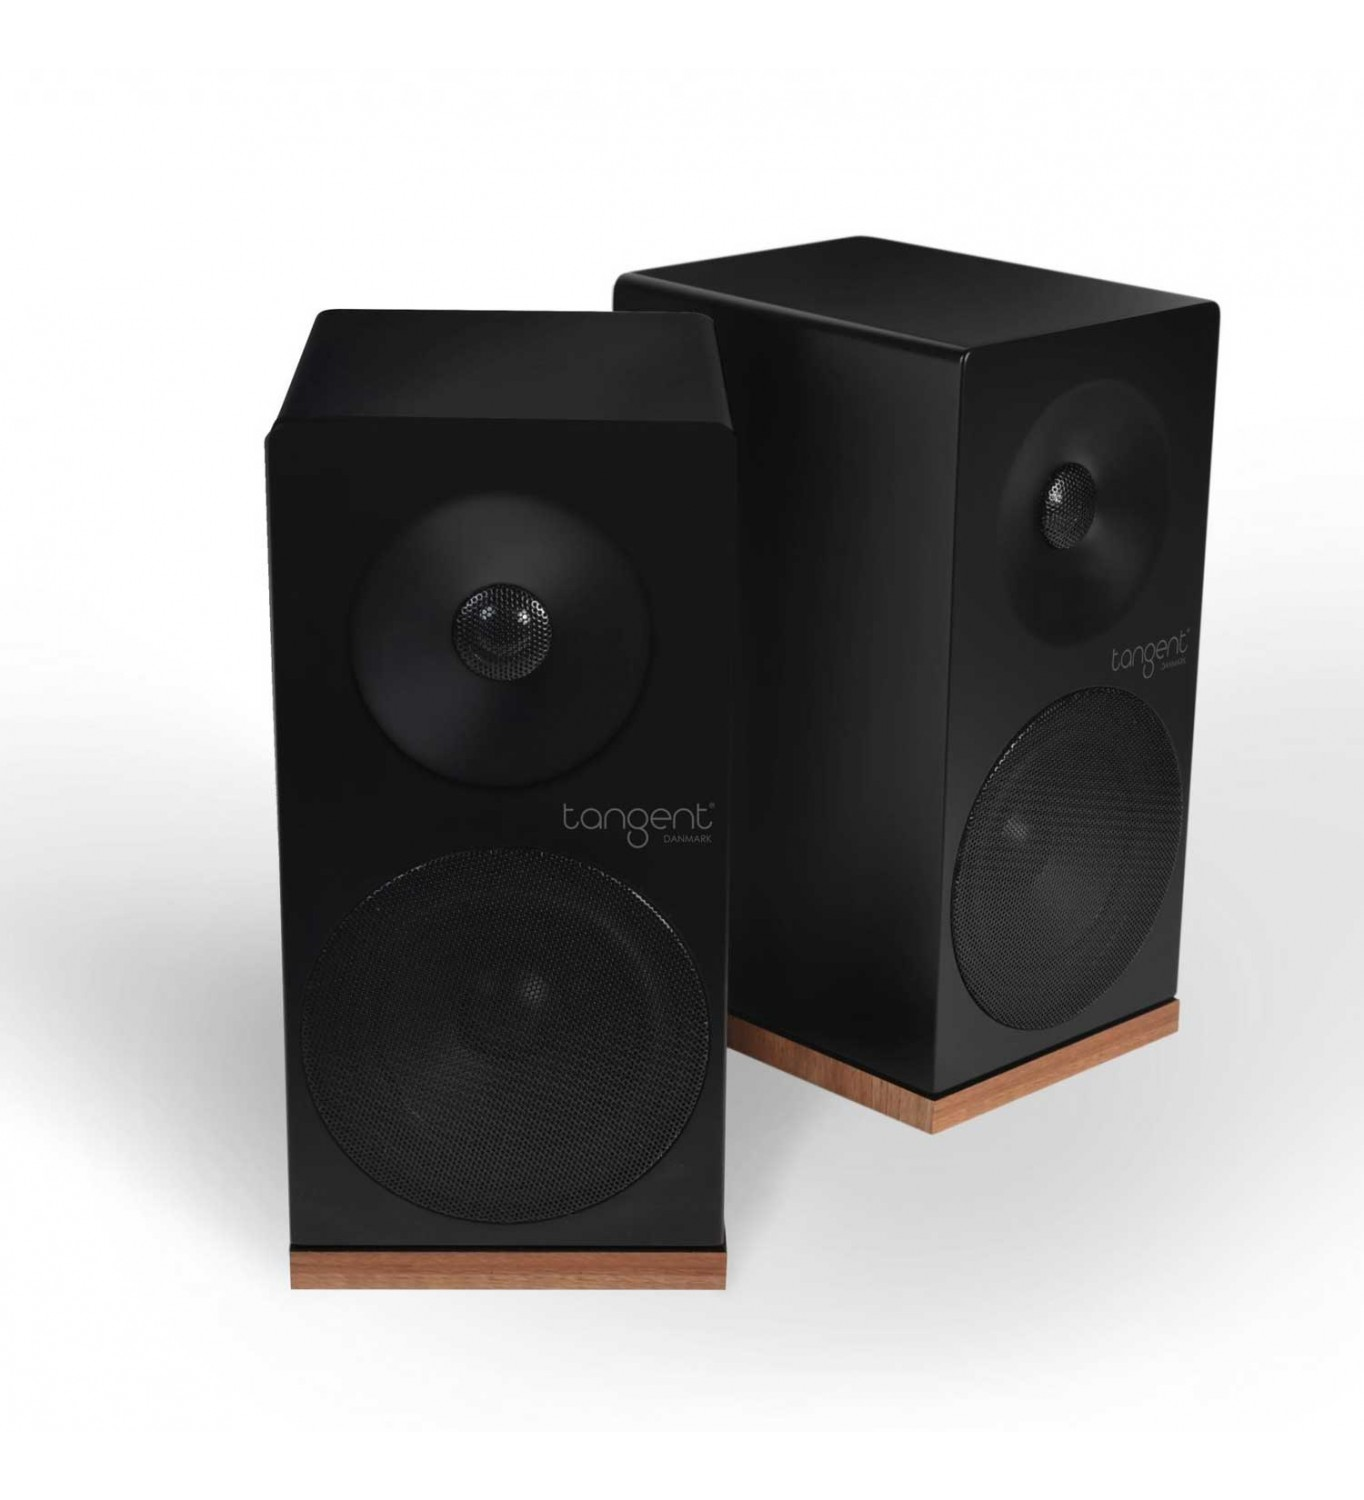 Tangent Spectrum X5 black